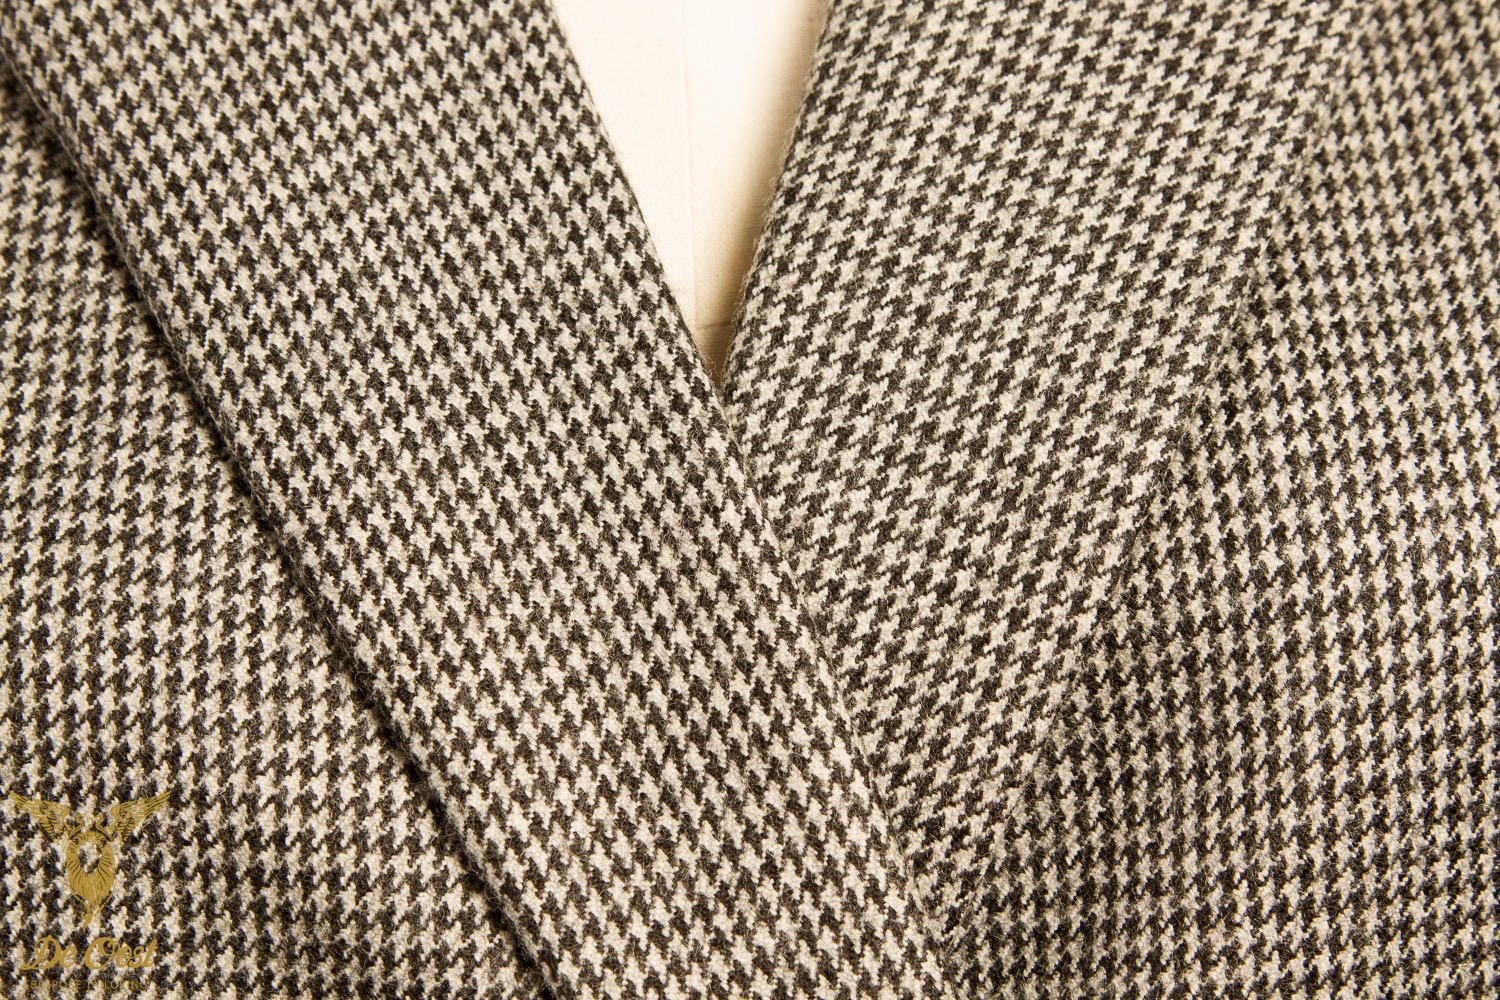 BESPOKE+DOUBLE+BREASTED+HOUNDSTOOTH+LADIES+JACKET+WITH+NOTCH+LAPELS+AND+BUTTONLESS+CUFFS+Amsterdam.jpg